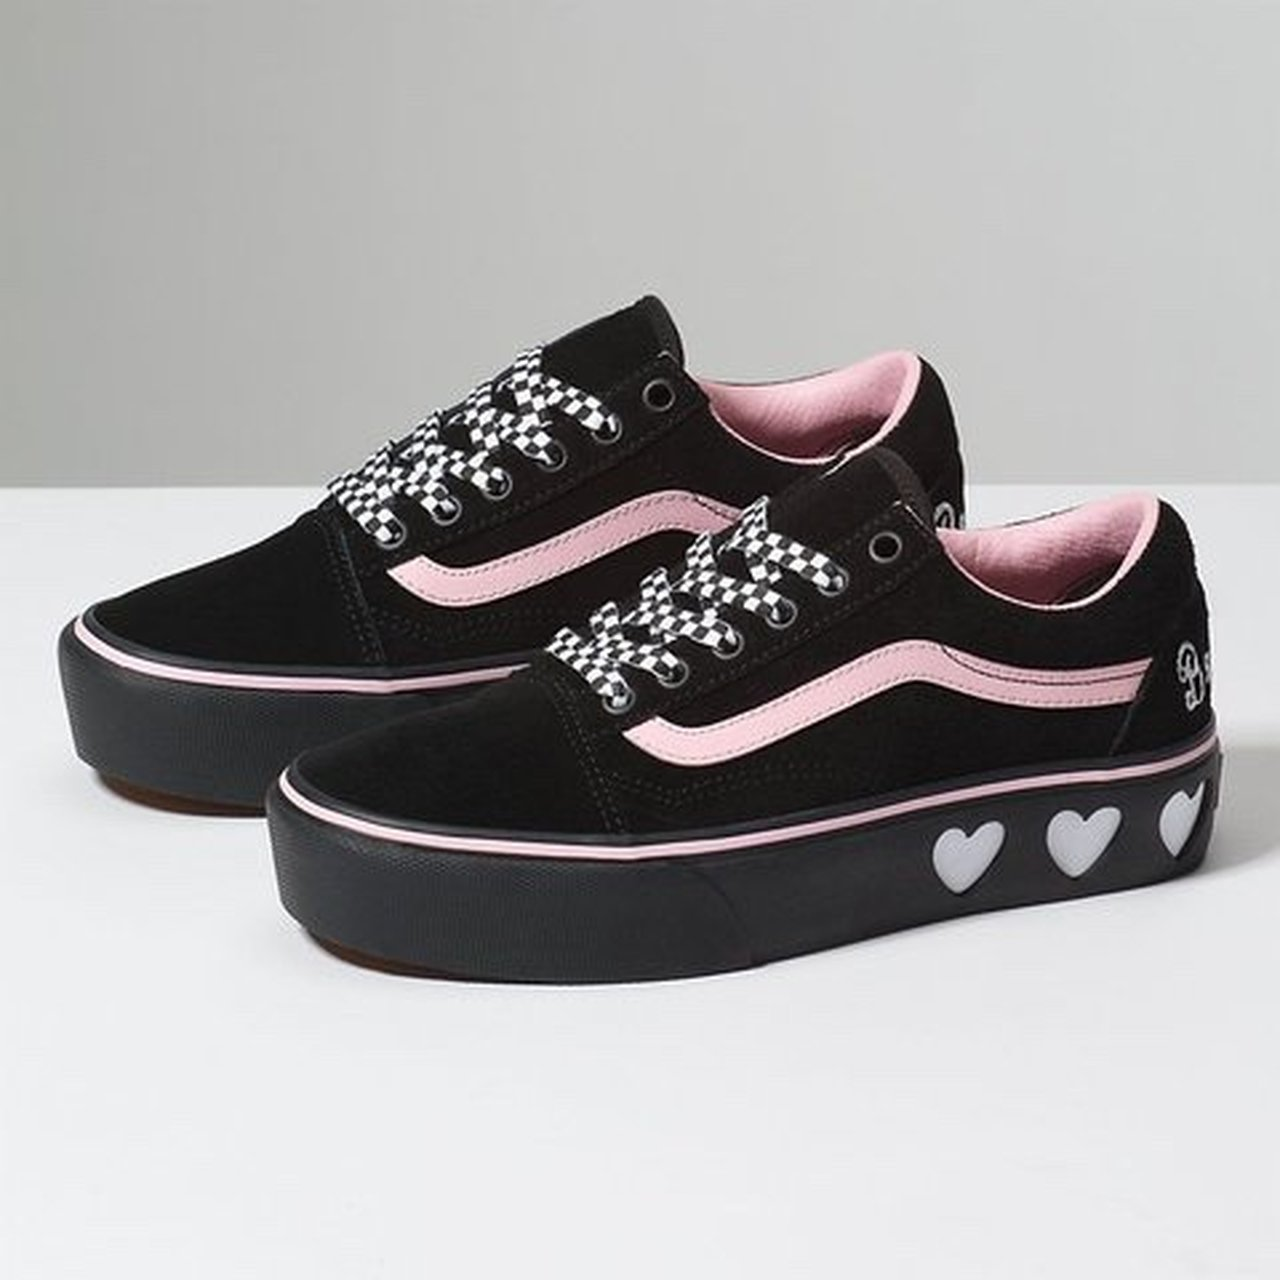 ellie9725. last month. United States. ISO lazy oaf vans size 8 women s ... 8457c1118b